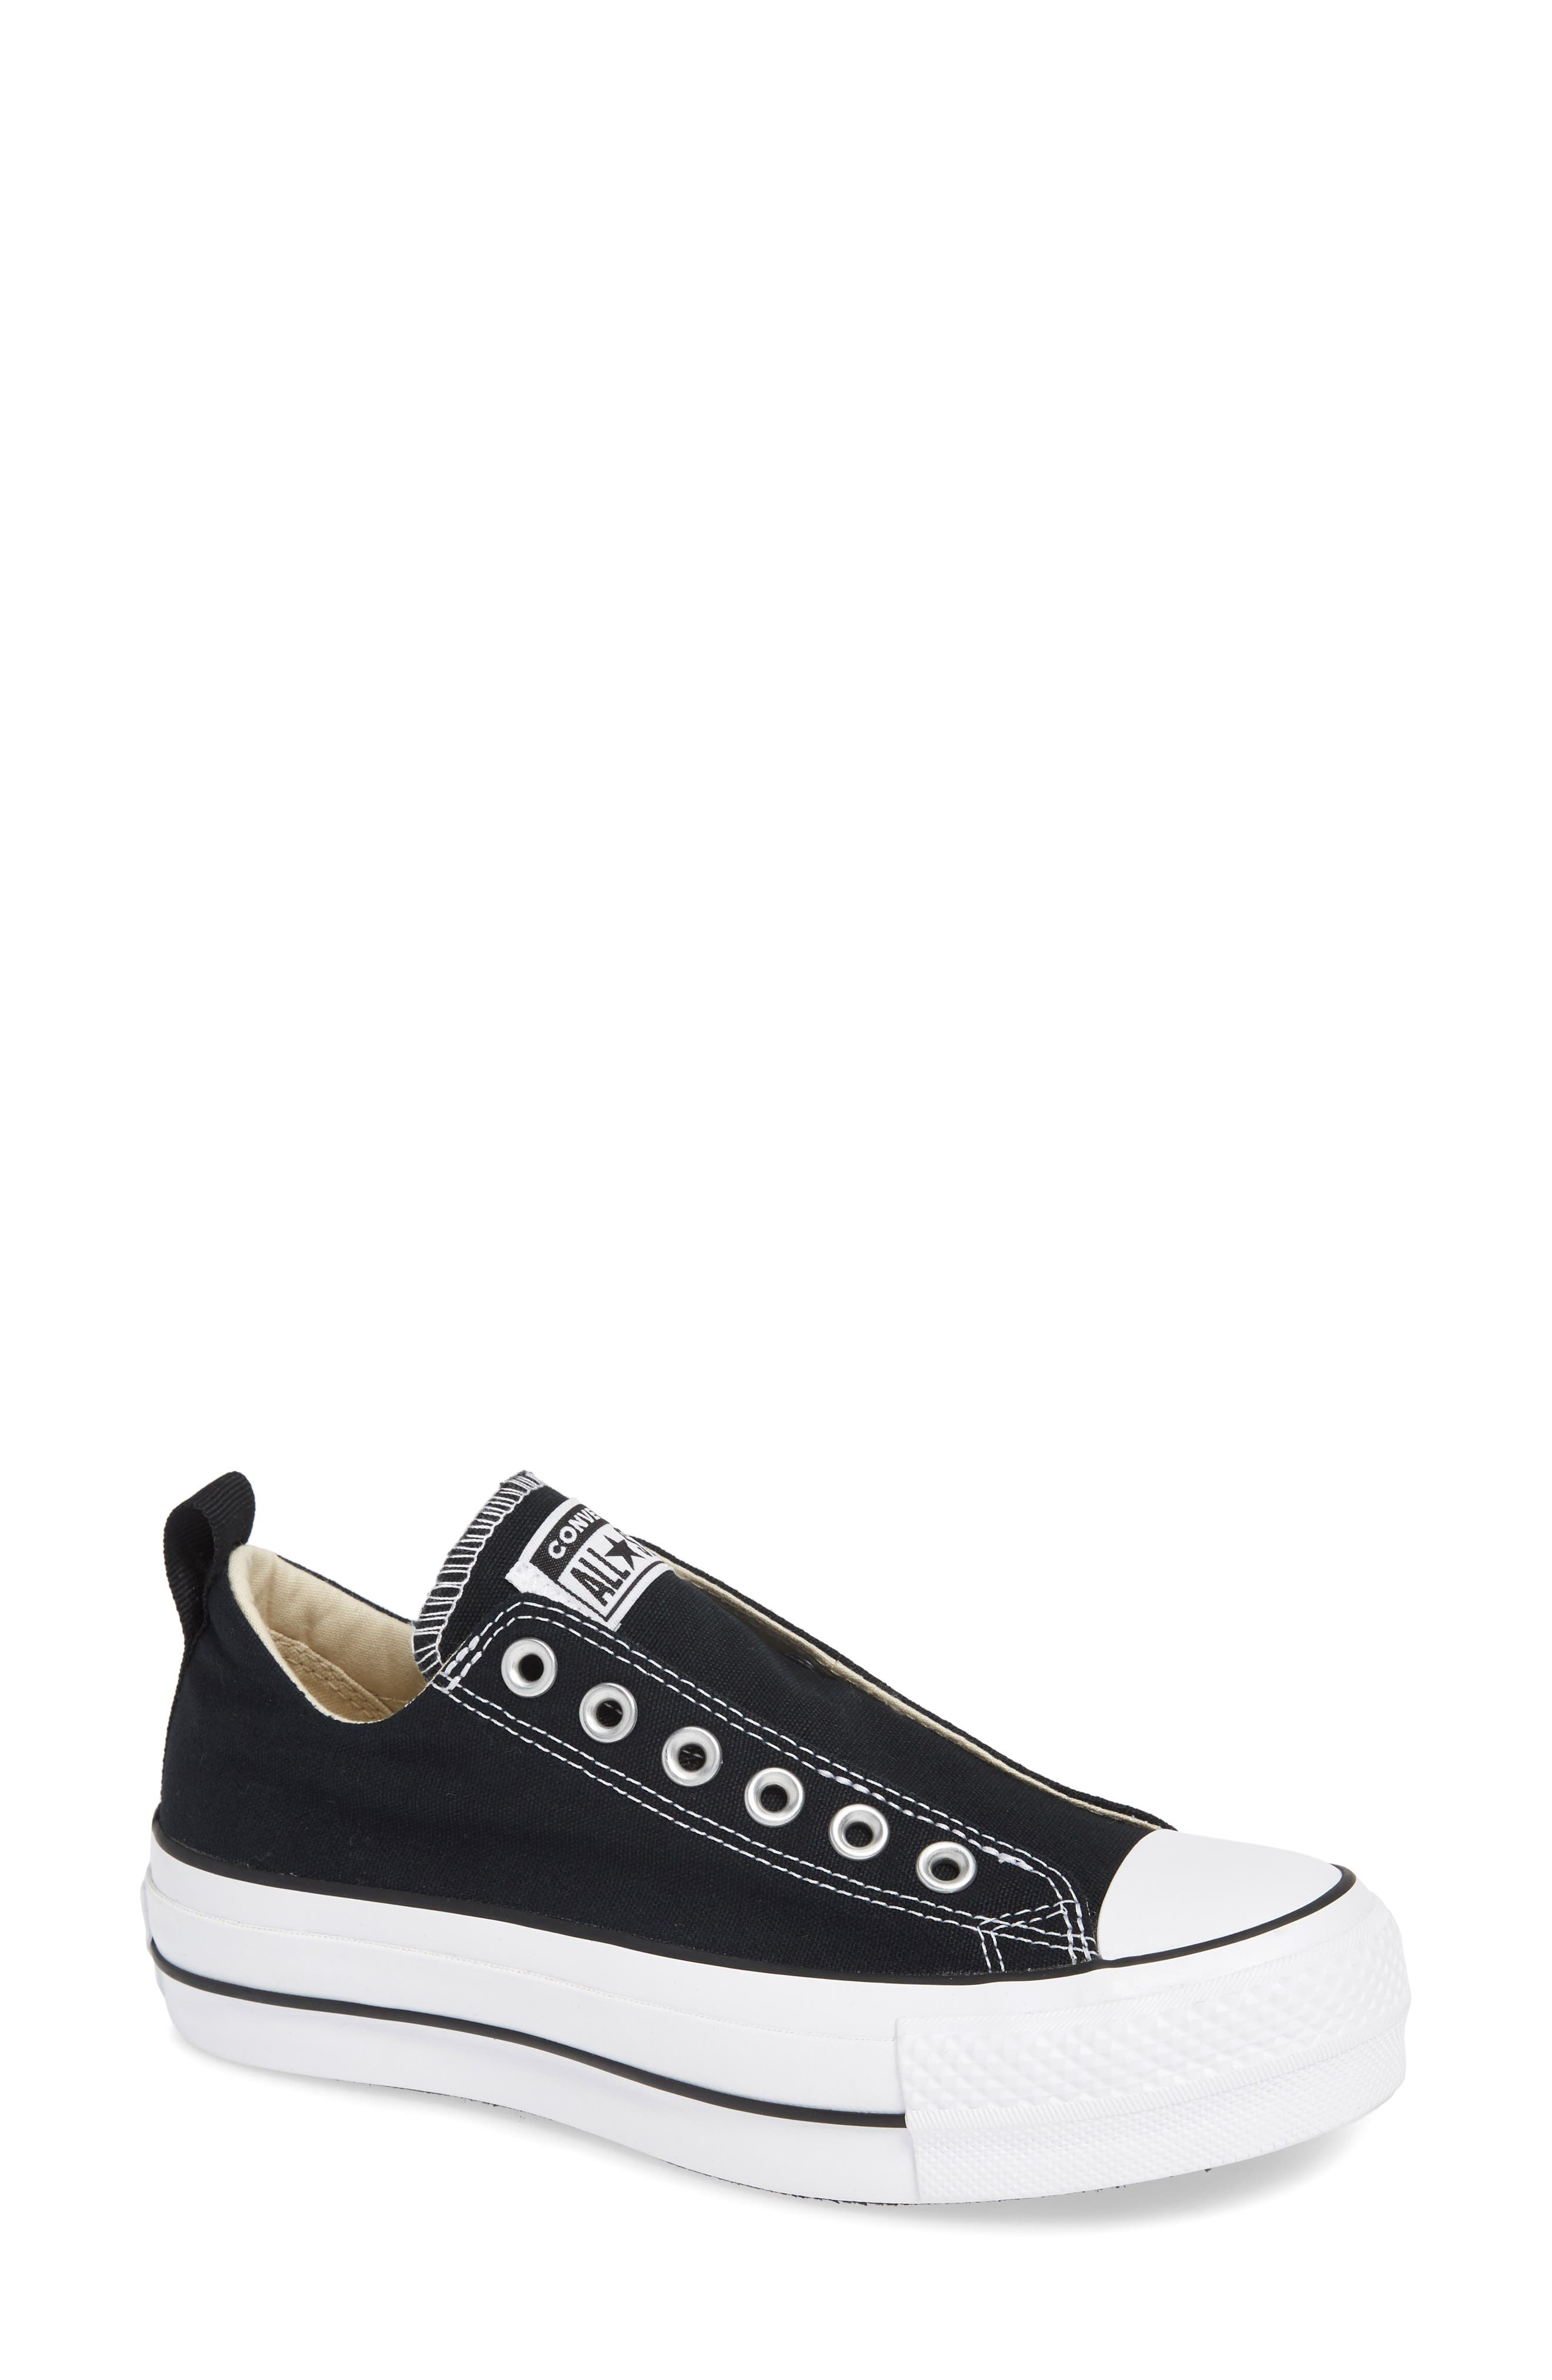 CONVERSE, Chuck Taylor<sup>®</sup> All Star<sup>®</sup> Low Top Sneaker, Main thumbnail 1, color, BLACK/ WHITE/ BLACK